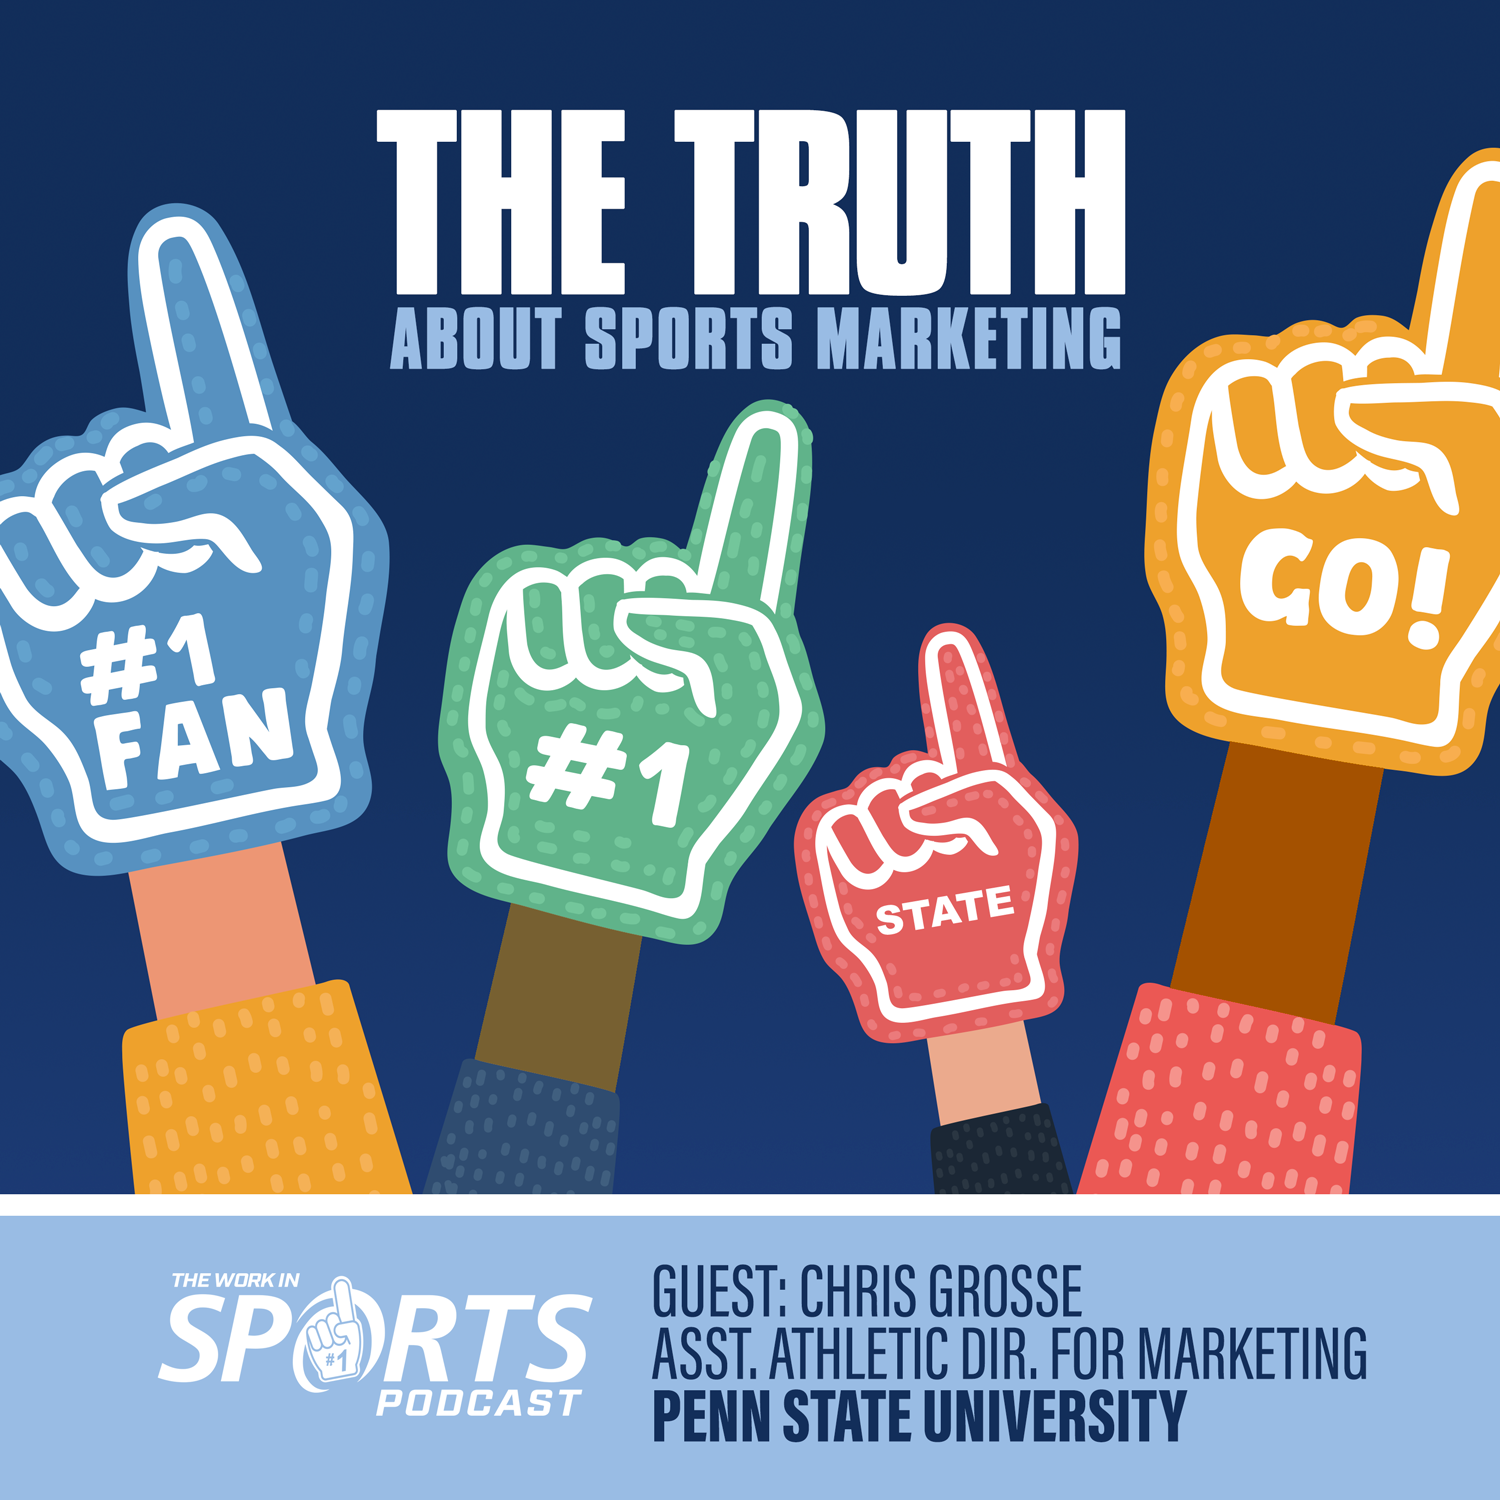 Chris grosse Penn State Assistant Athletic Director for Marketing